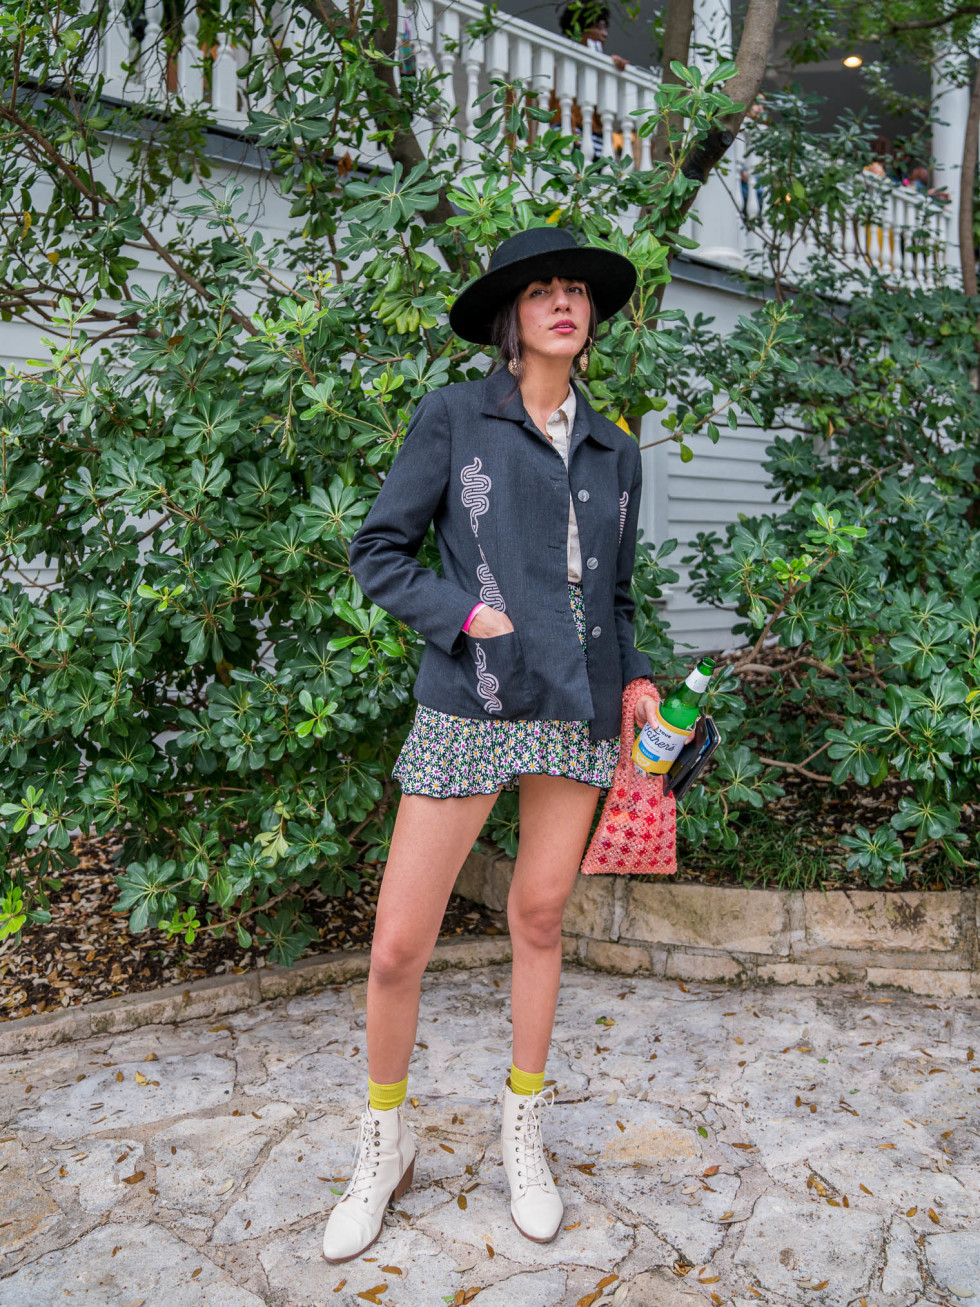 Create and Cultivate Austin SXSW 2019 at the Allan House Leslie Barrientos